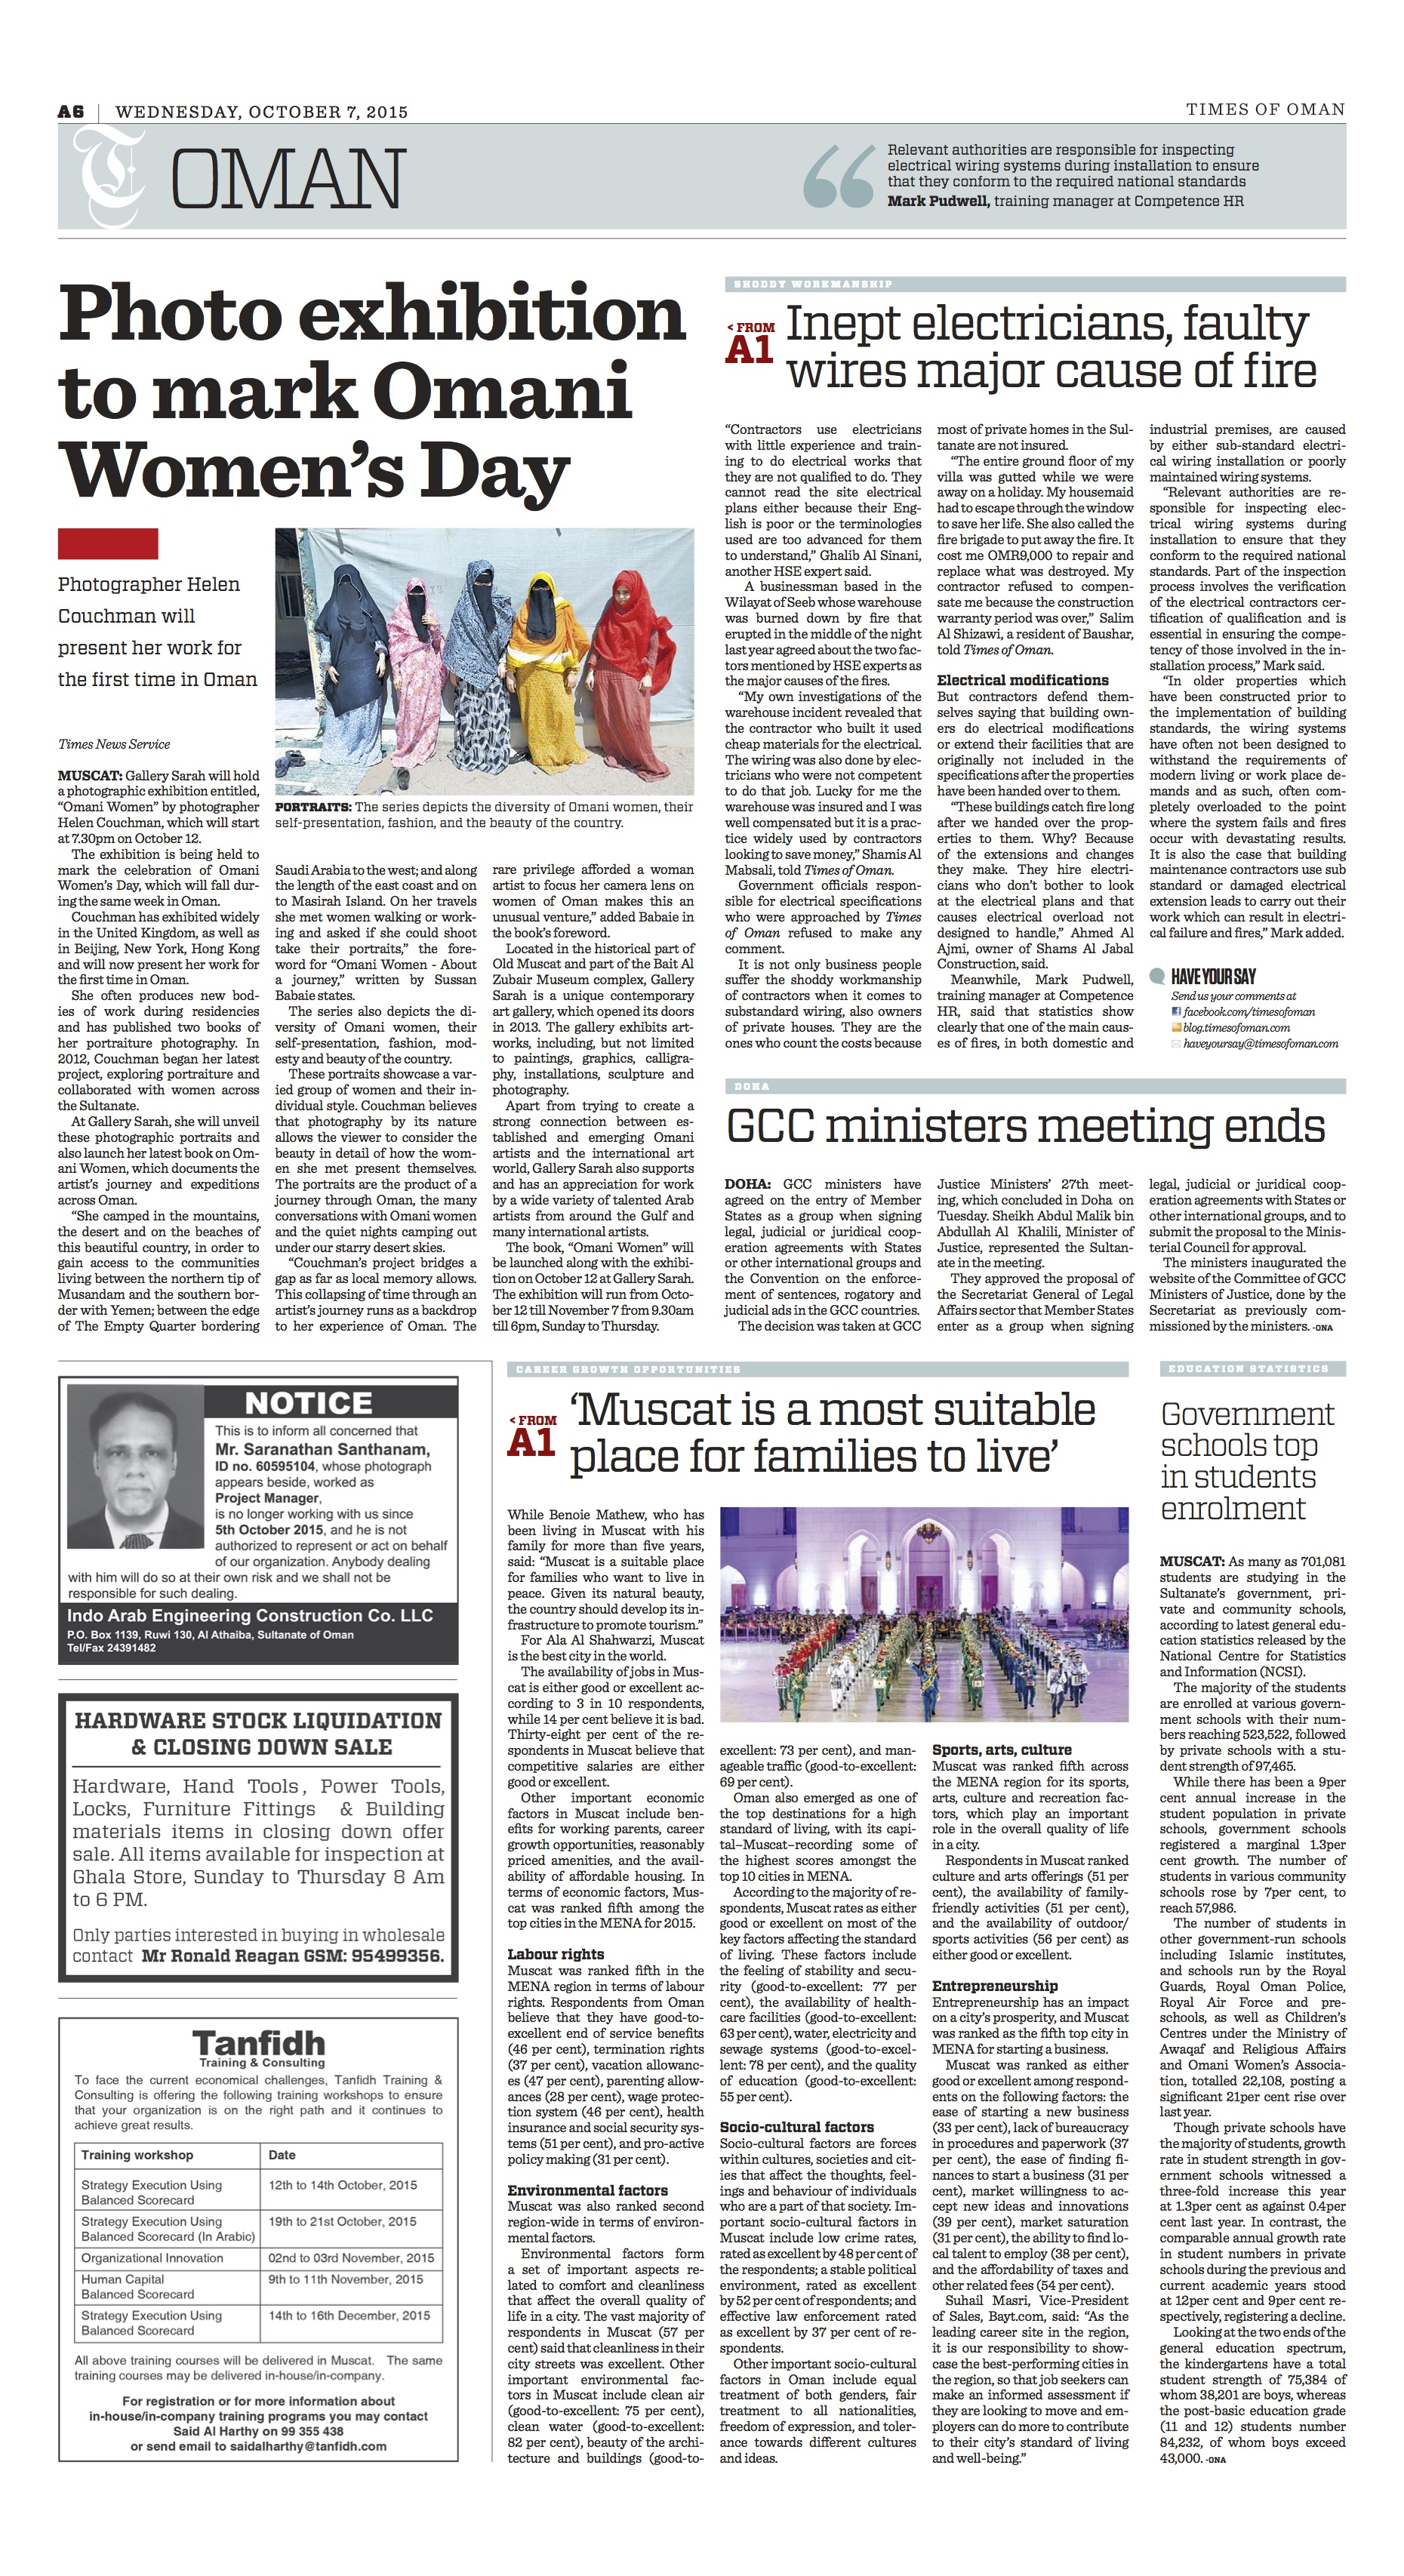 Omani Women article, Times of Oman. Wednesday 7 October 2015